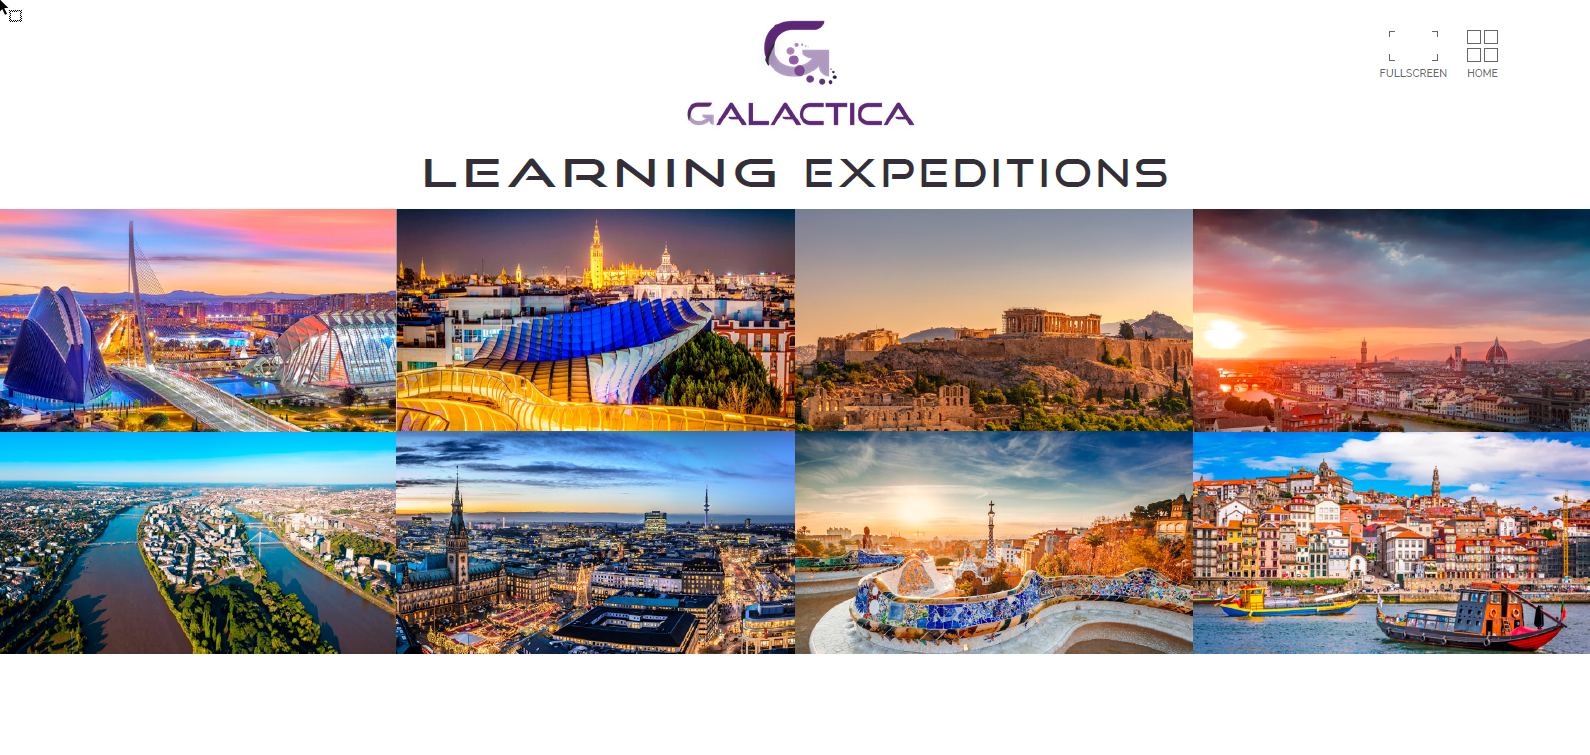 2021-09-16 15_39_23-8-learning-expeditions-booklet-draft-fv.pdf - Adobe Acrobat Pro DC